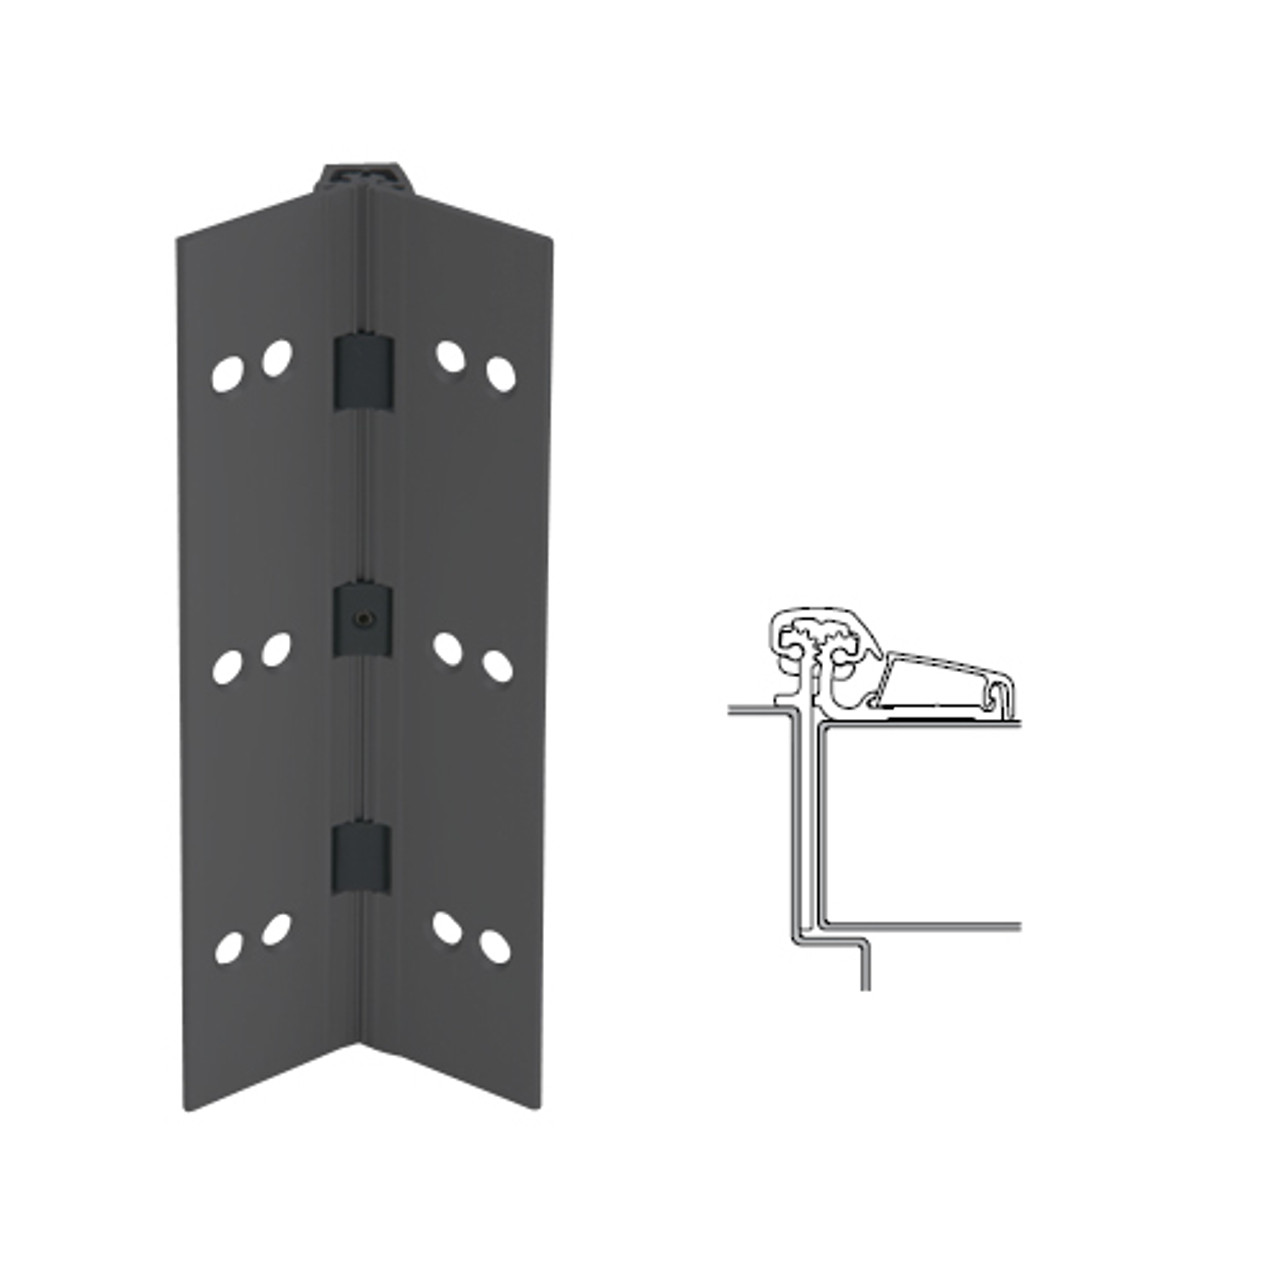 054XY-315AN-95-SECWDWD IVES Adjustable Half Surface Continuous Geared Hinges with Security Screws - Hex Pin Drive in Anodized Black